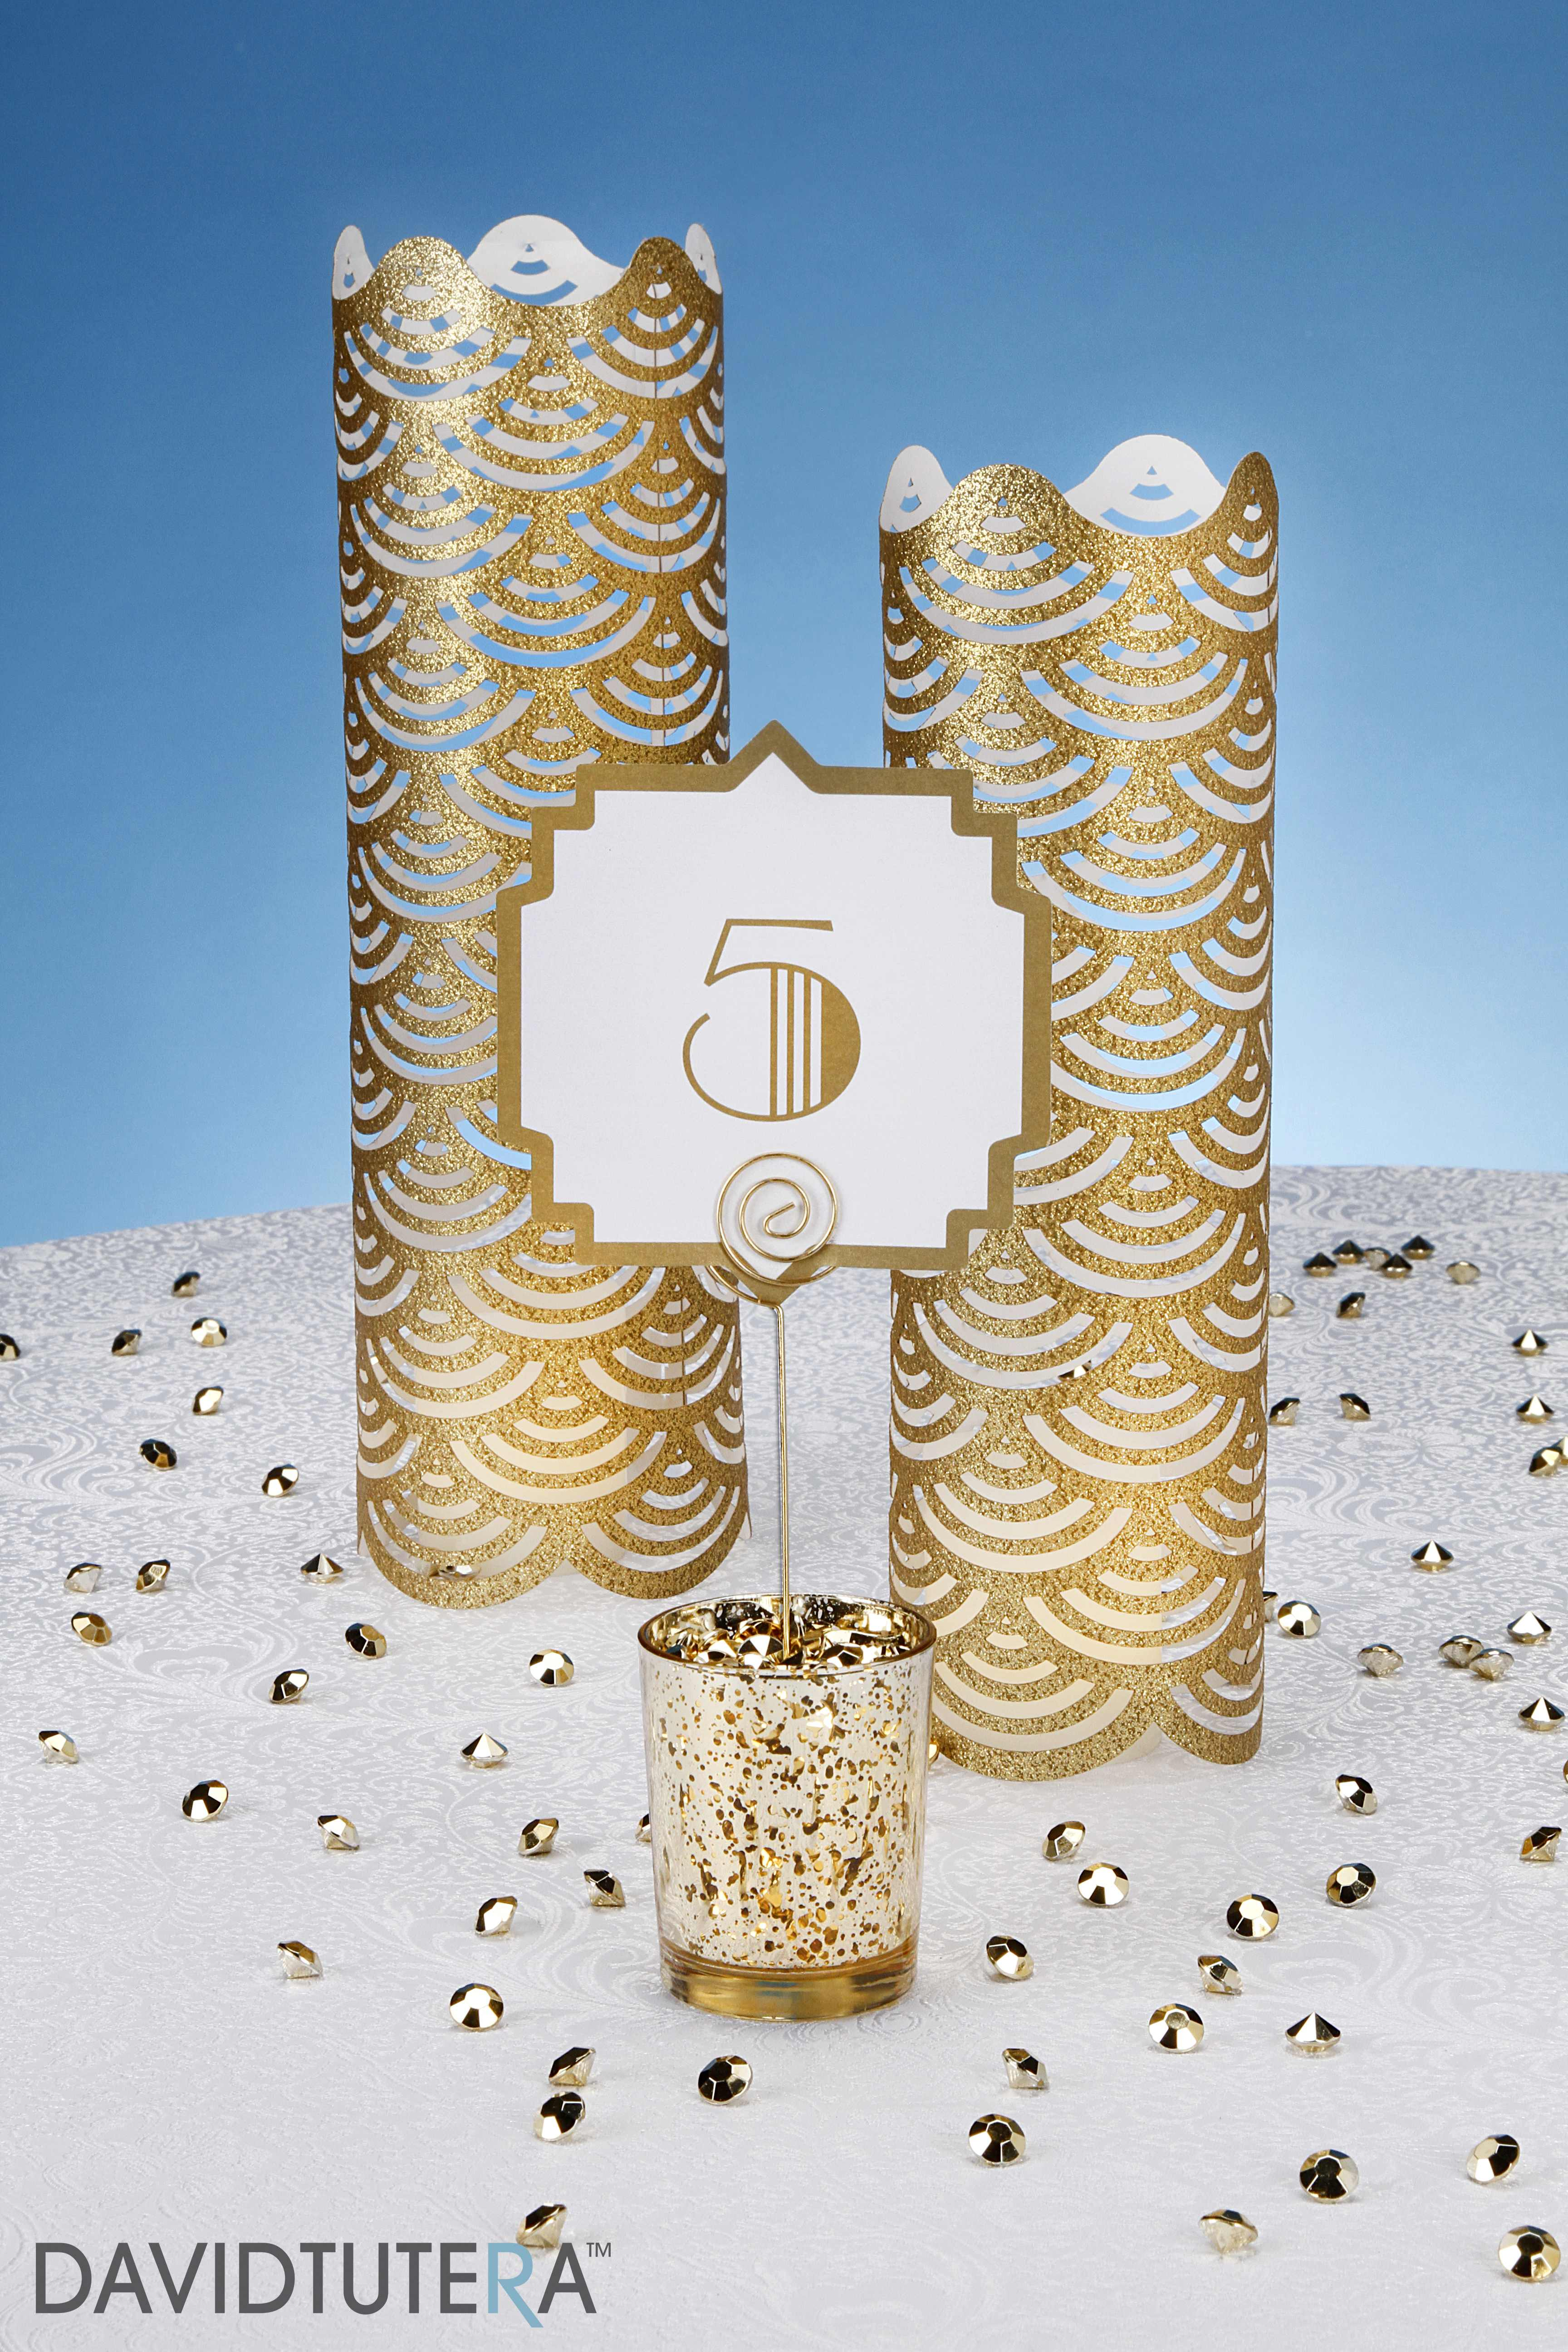 Art Deco Table Number & Decorative Luminary